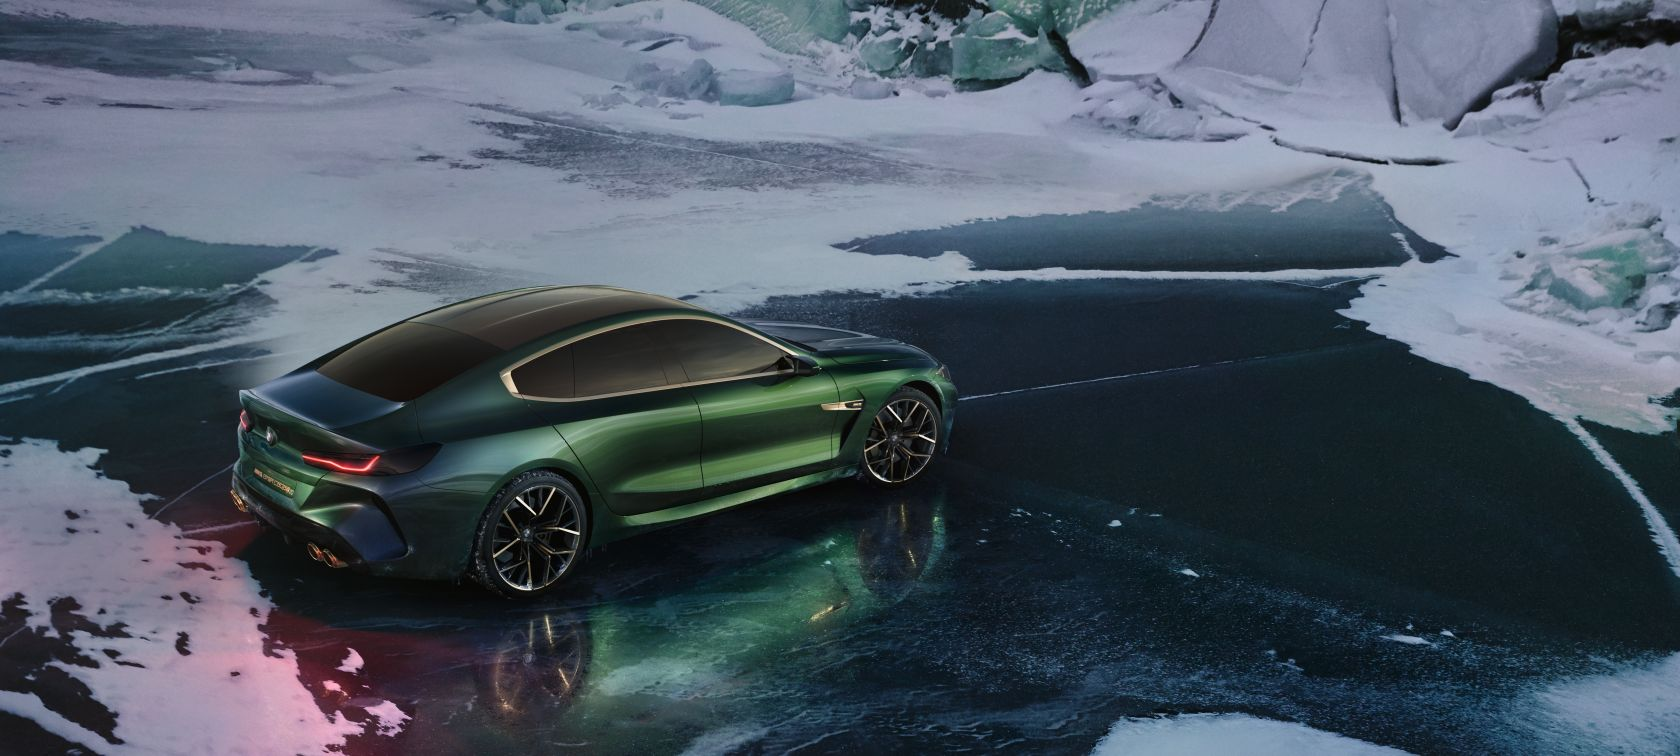 The Bmw Concept M8 Gran Coupe